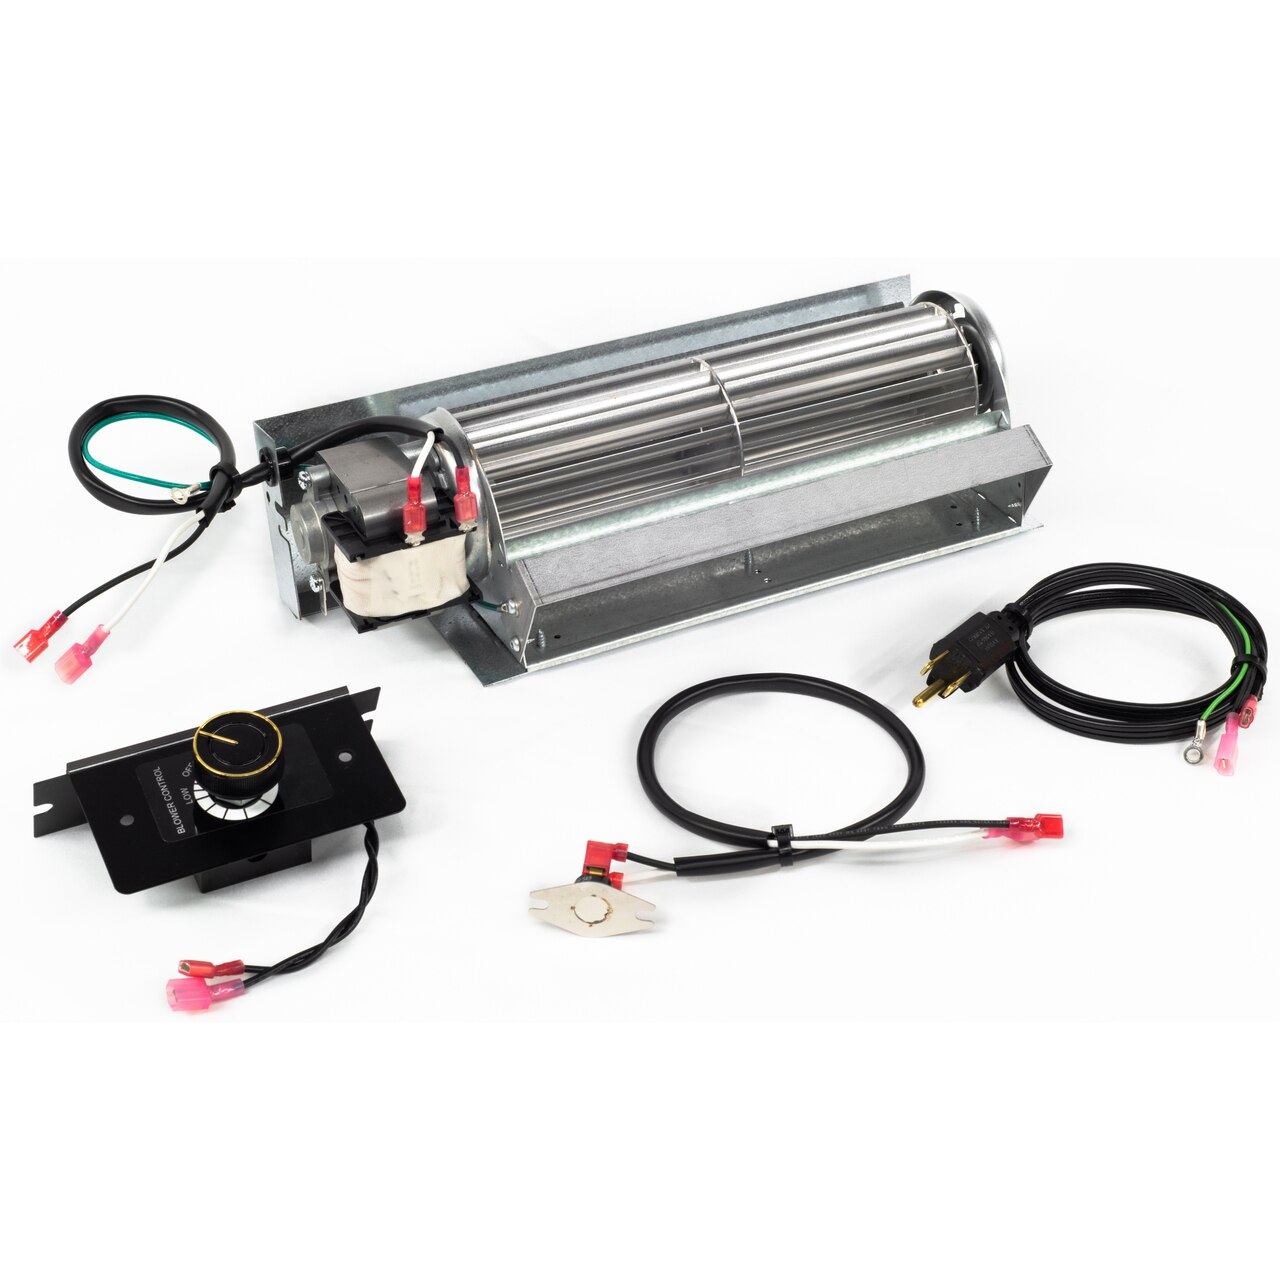 Empire FBB4 Variable Speed Blower Kit with Temperature Sensor